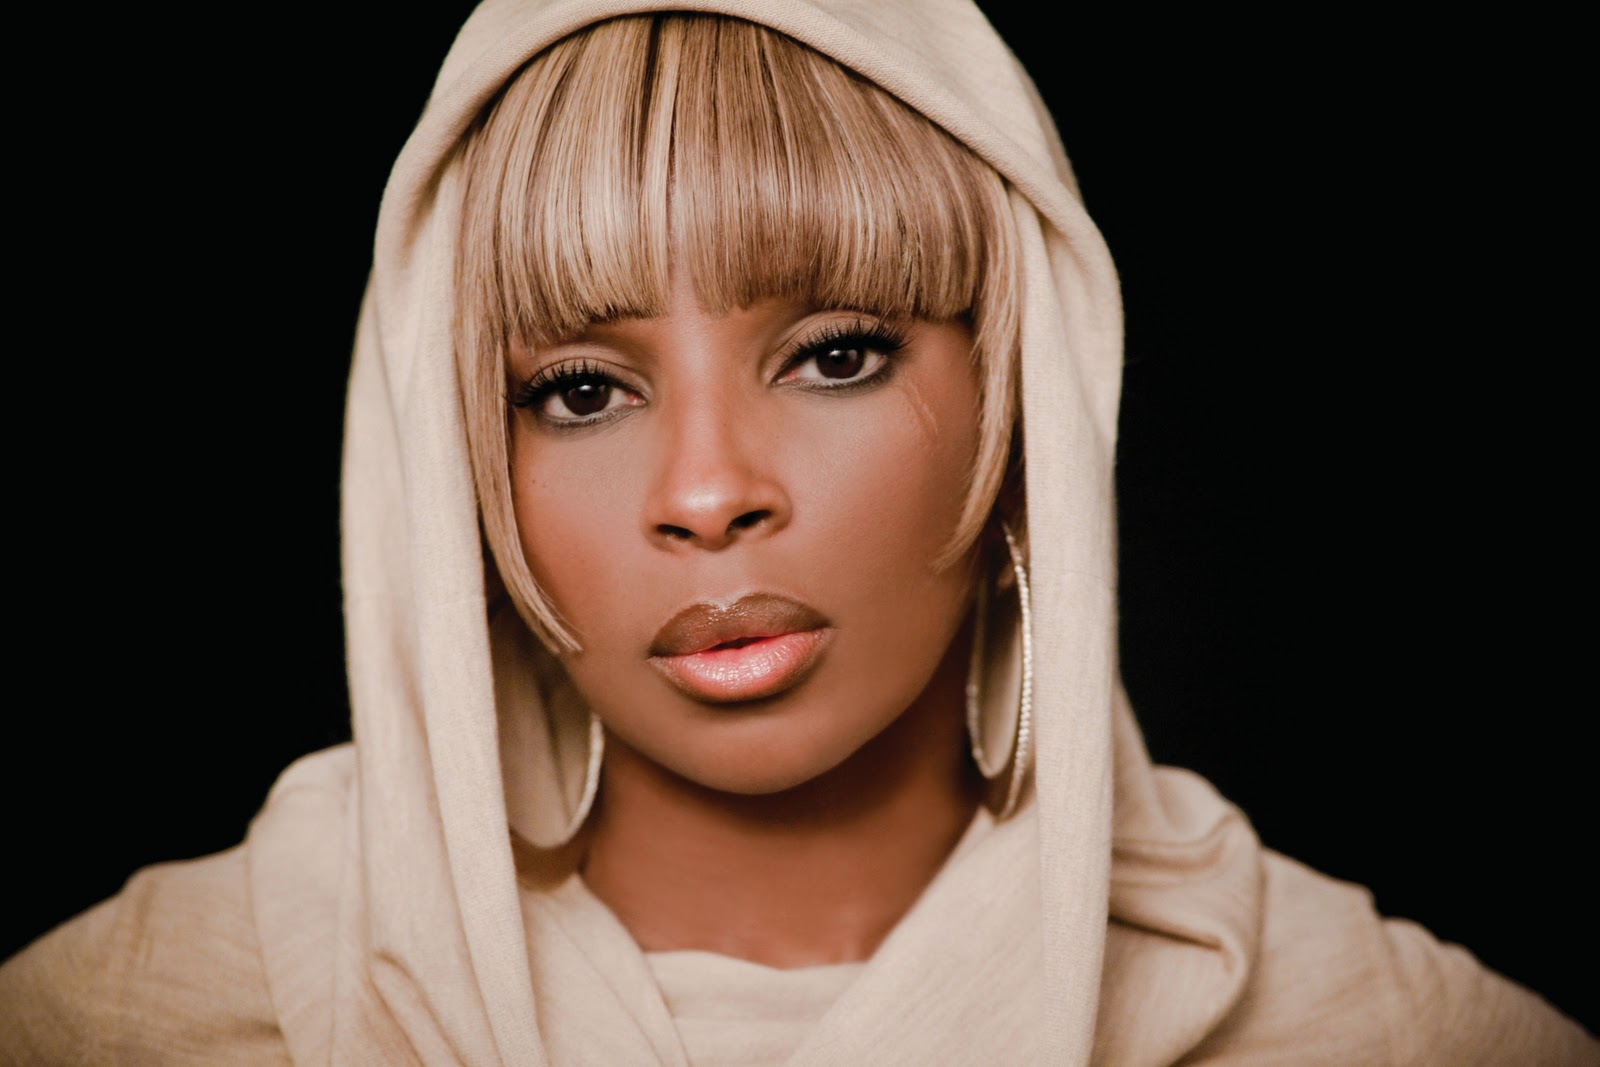 Mary J. Blige hit with $3.4 million tax lien